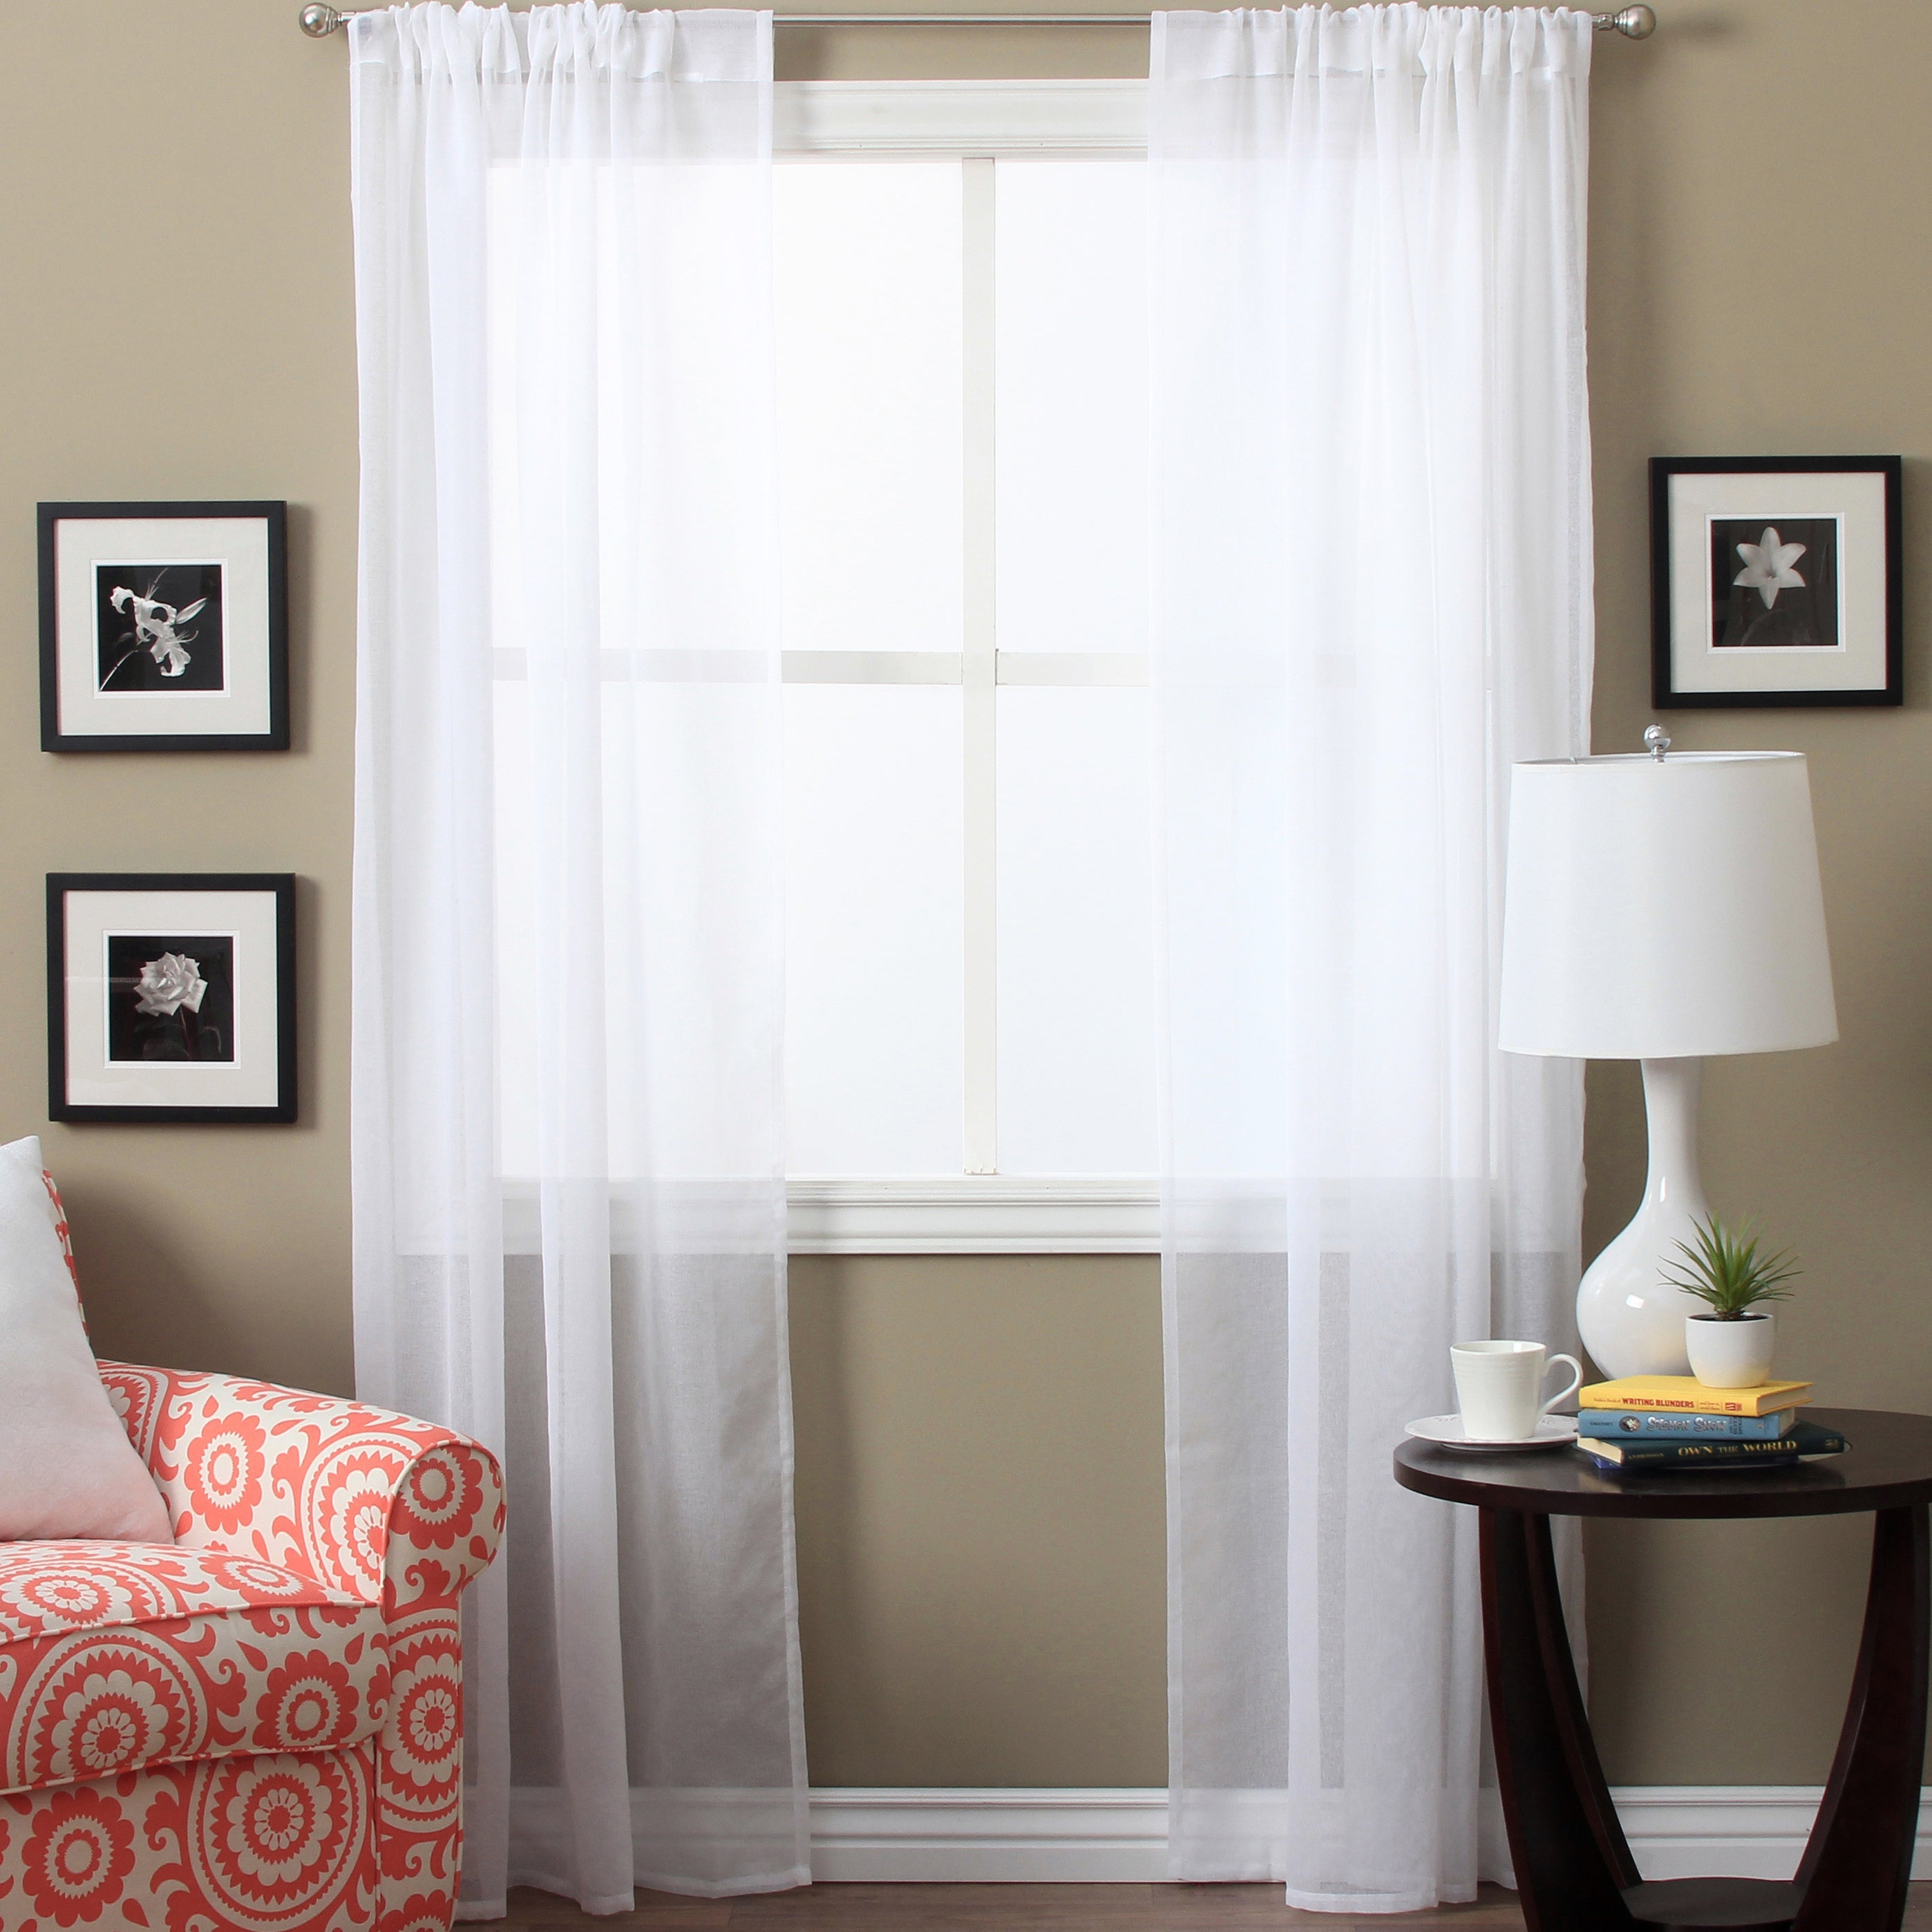 Lucerne Sheer 96 Inch Curtain Panel Pair – 52 X 96 With The Gray Barn Kind Koala Curtain Panel Pairs (View 16 of 30)